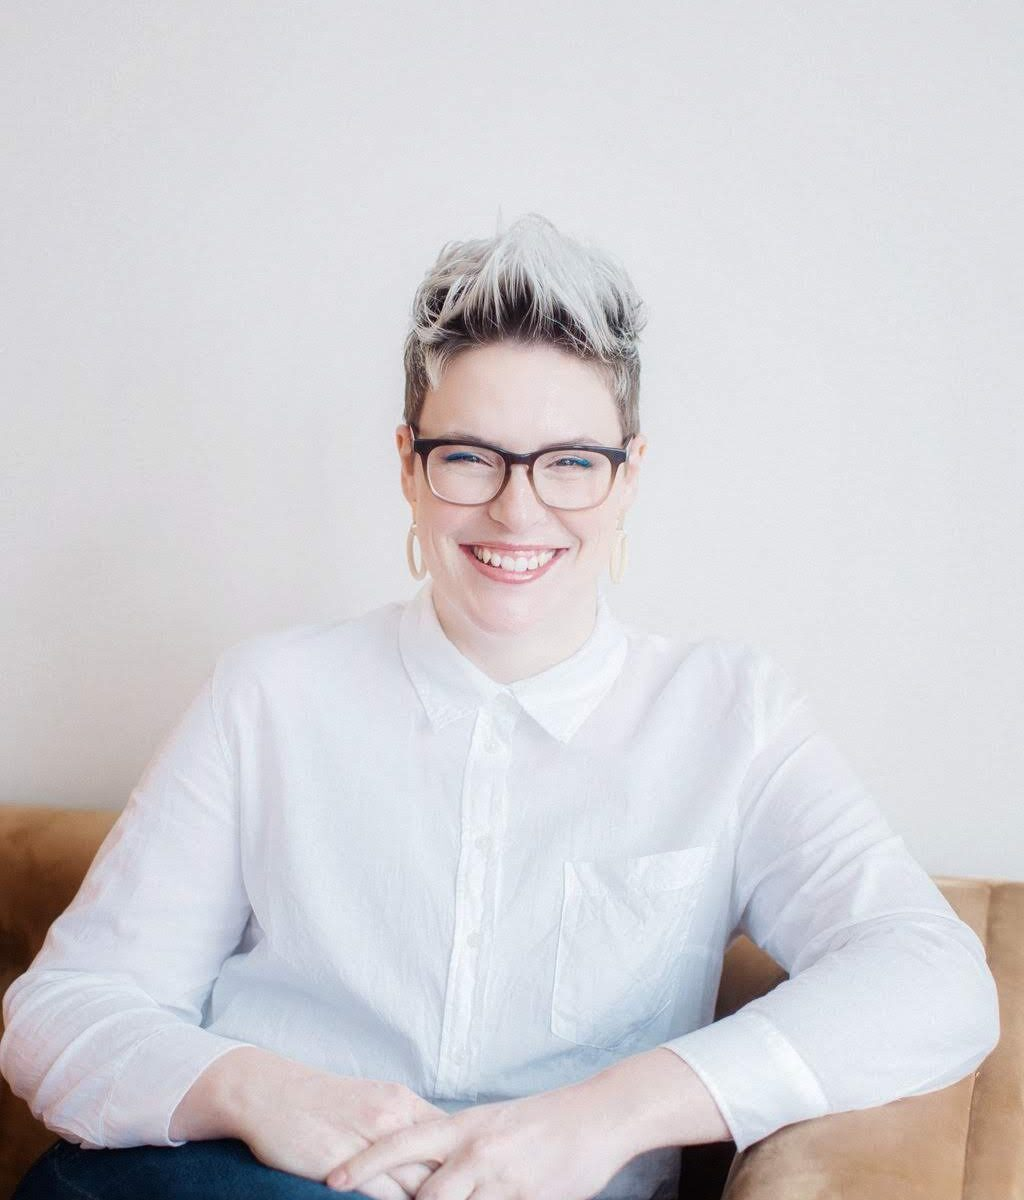 Erin Neilson, calligrapher, sitting and smiling on a couch